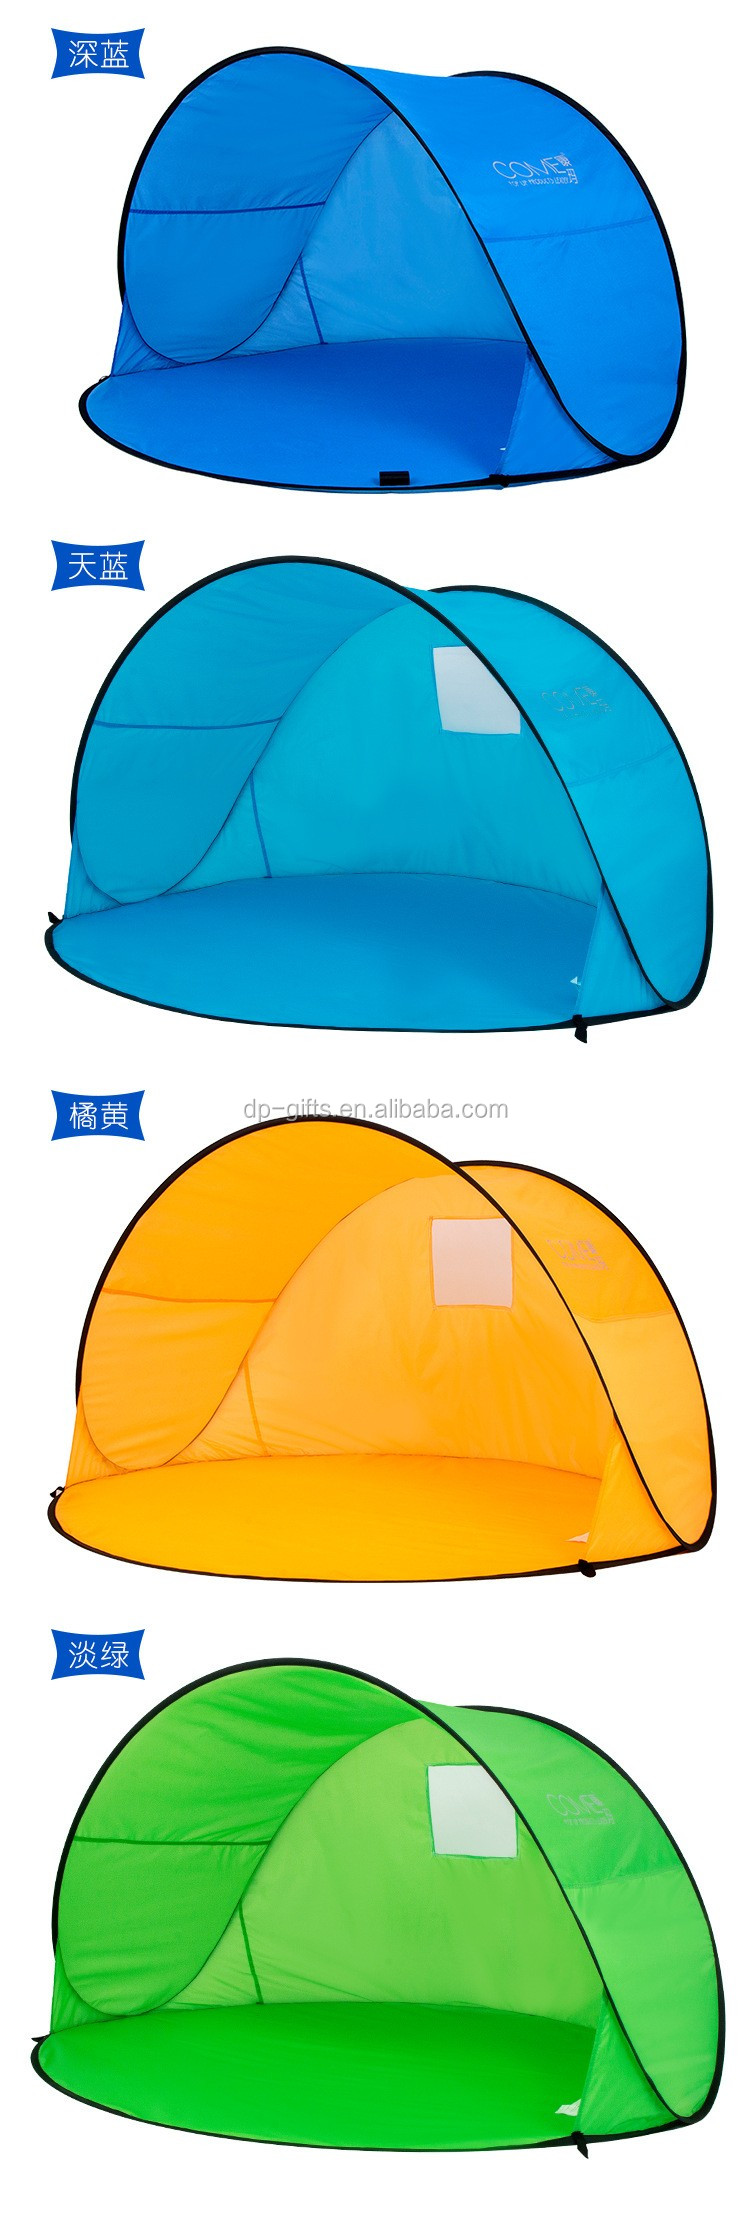 2-3 Person Pop up beach tent sun shelter,Shade Shack Instant Pop Up Portable Family Beach Tent and Sun Shelter